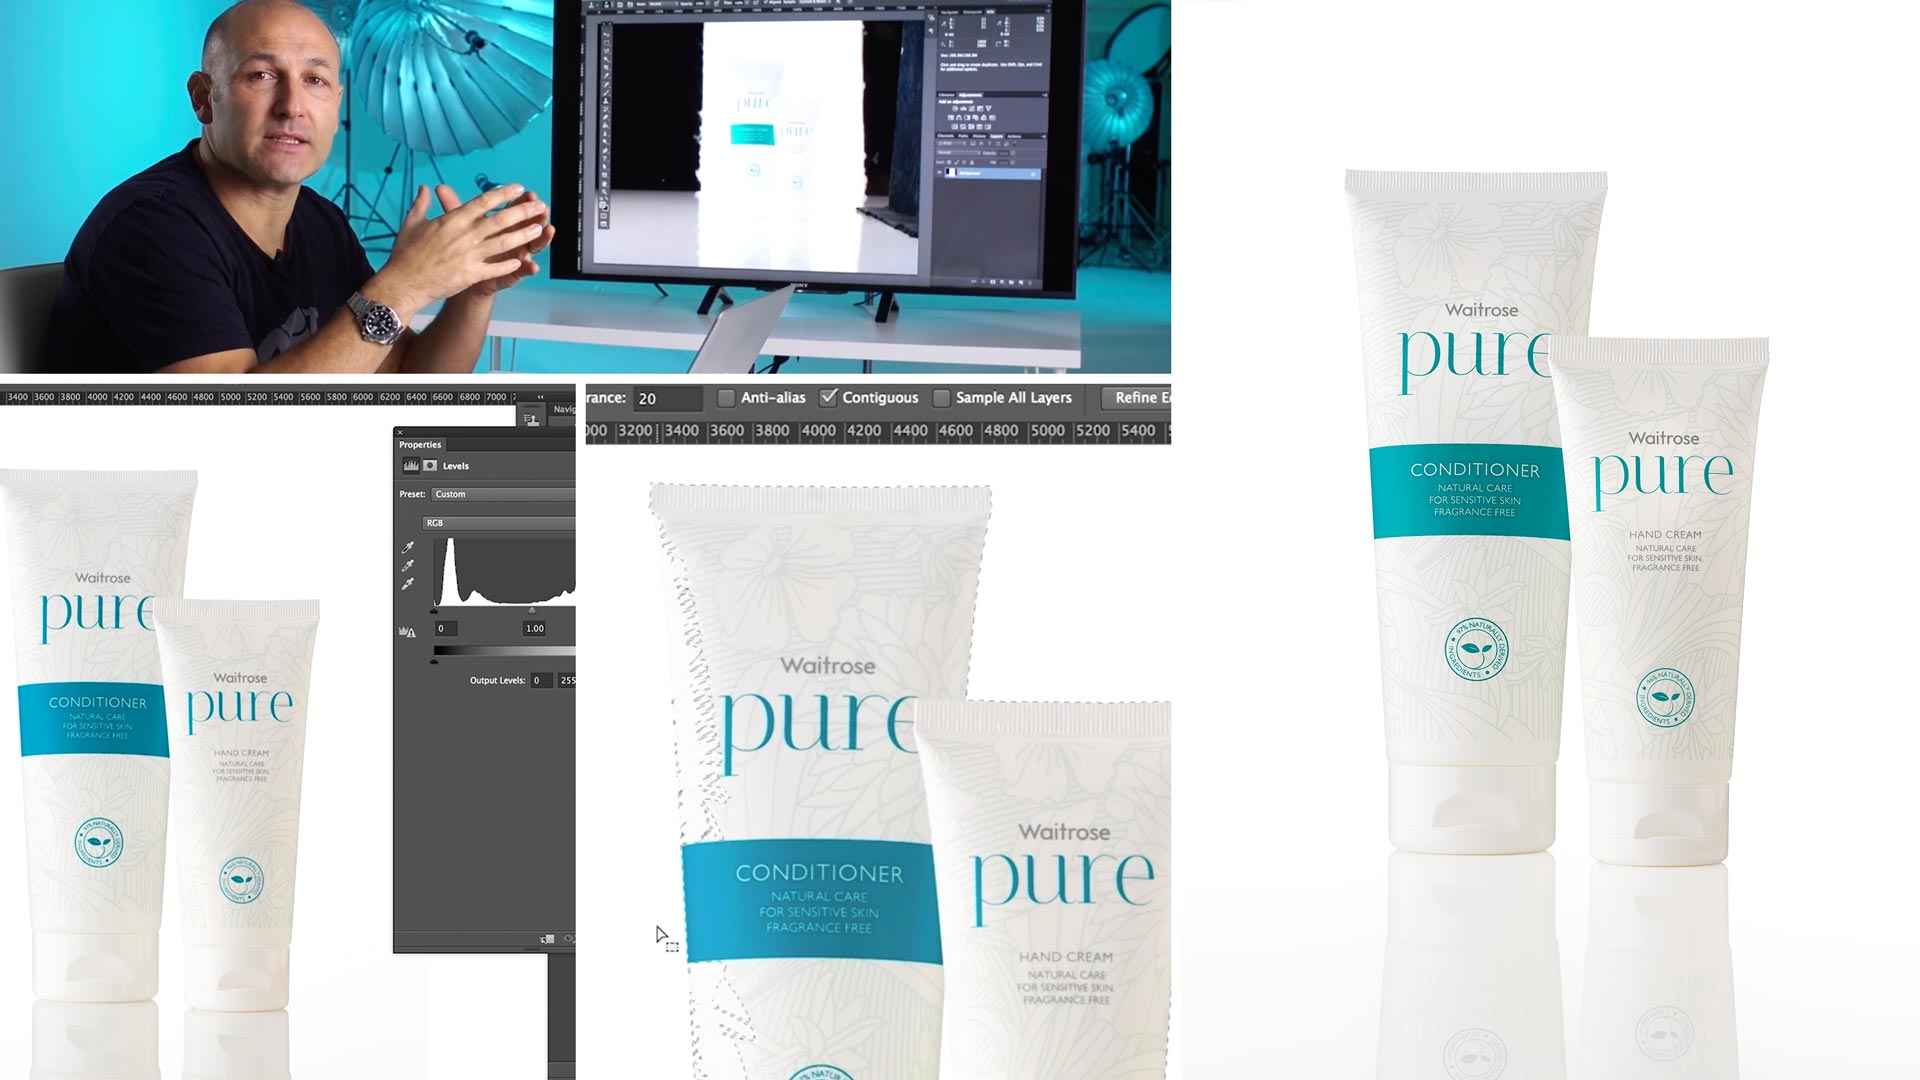 Practical demonstration on product retouch